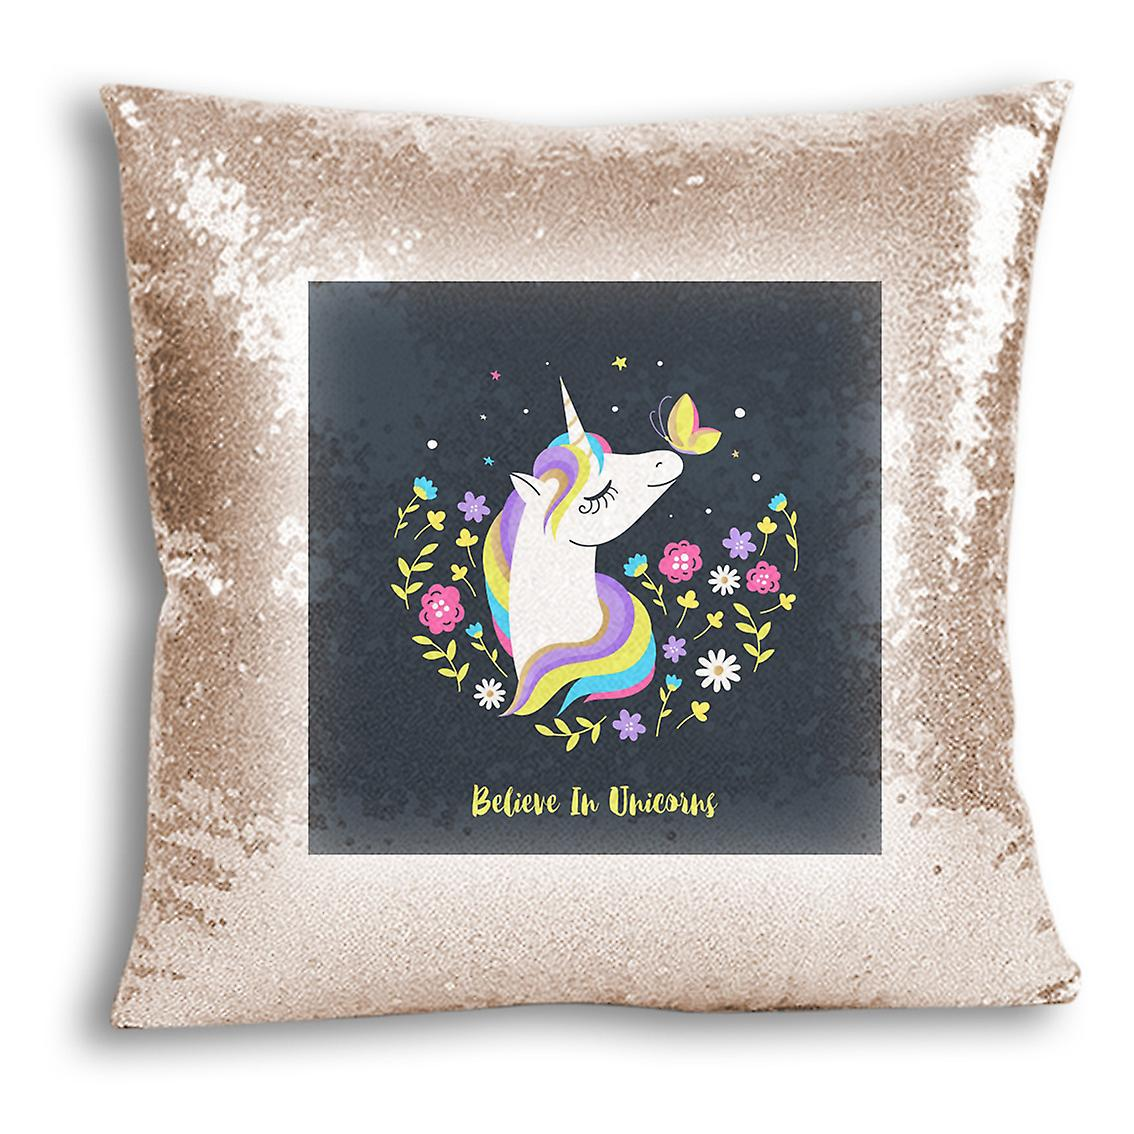 Champagne tronixsUnicorn With I Sequin CushionPillow Inserted Decor 14 Cover For Home Printed Design Yfbgy76